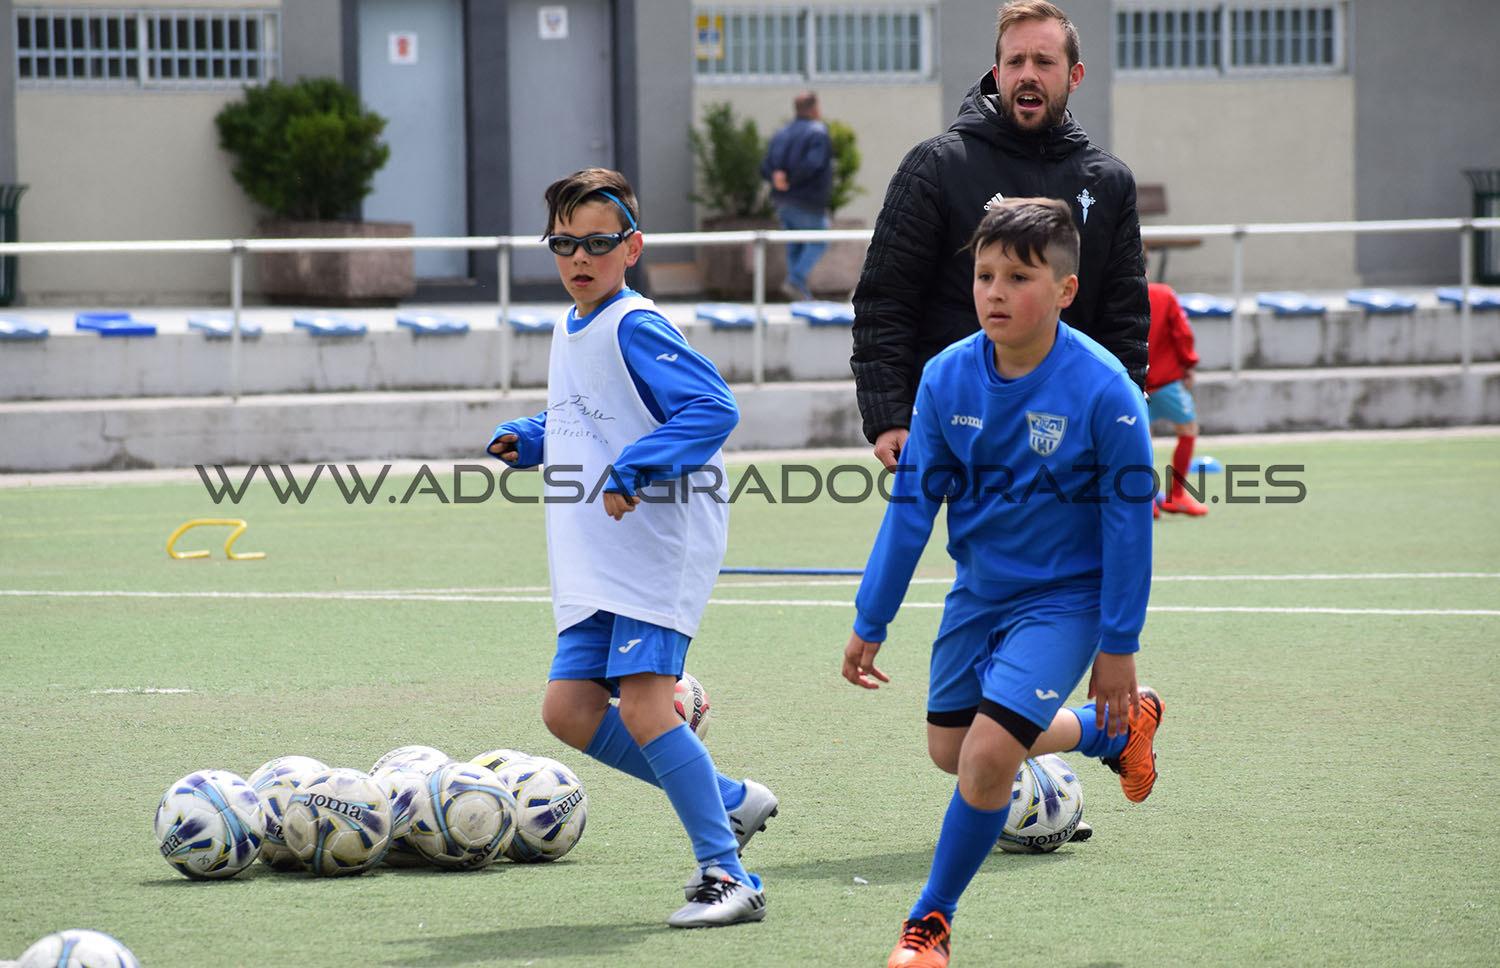 clinic-celta-sagrado (42)